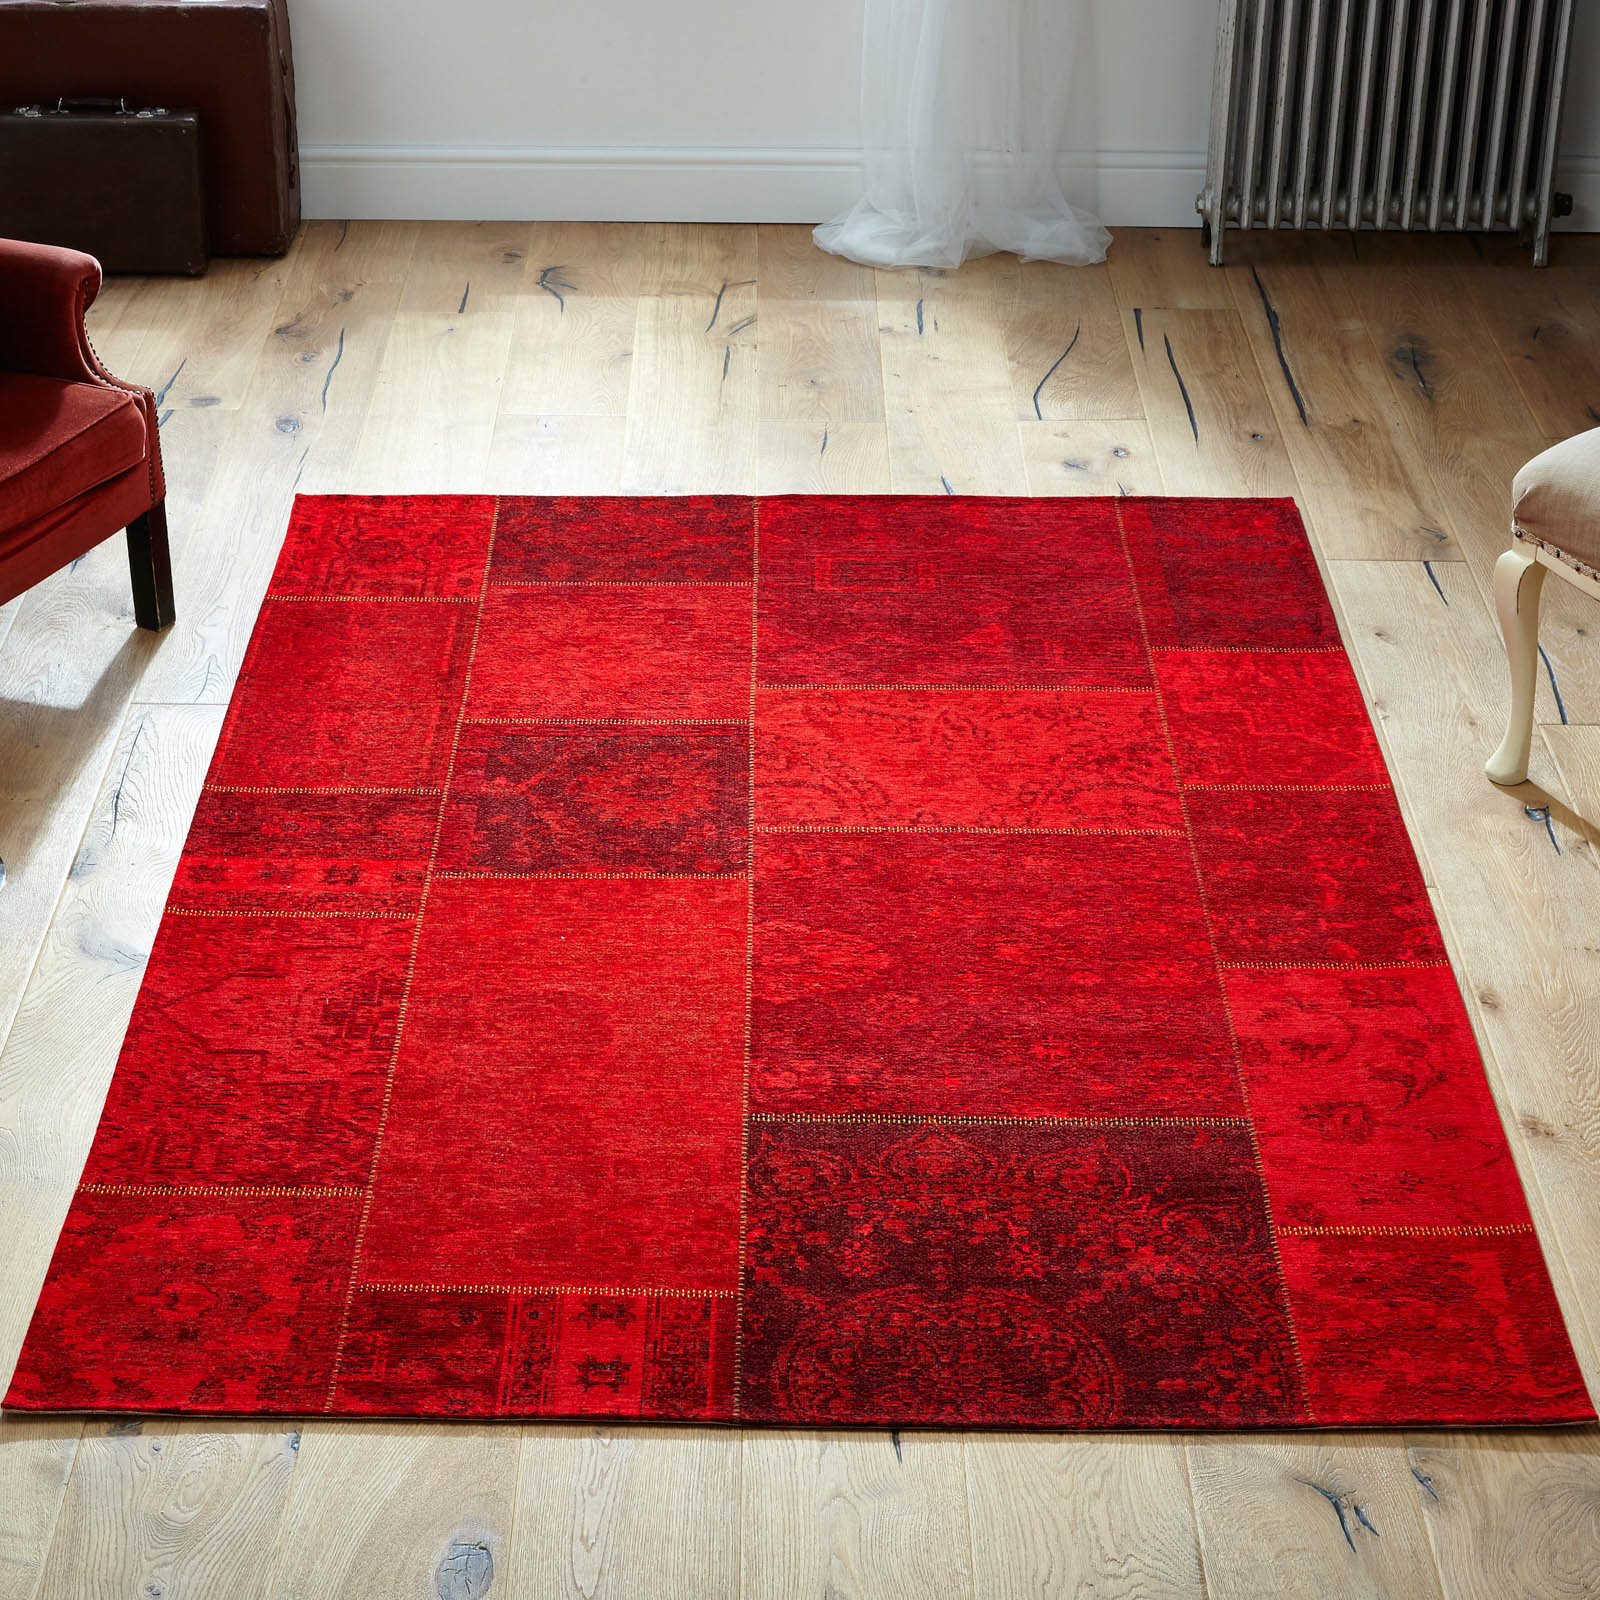 Renaissance Rugs 25 R in Red